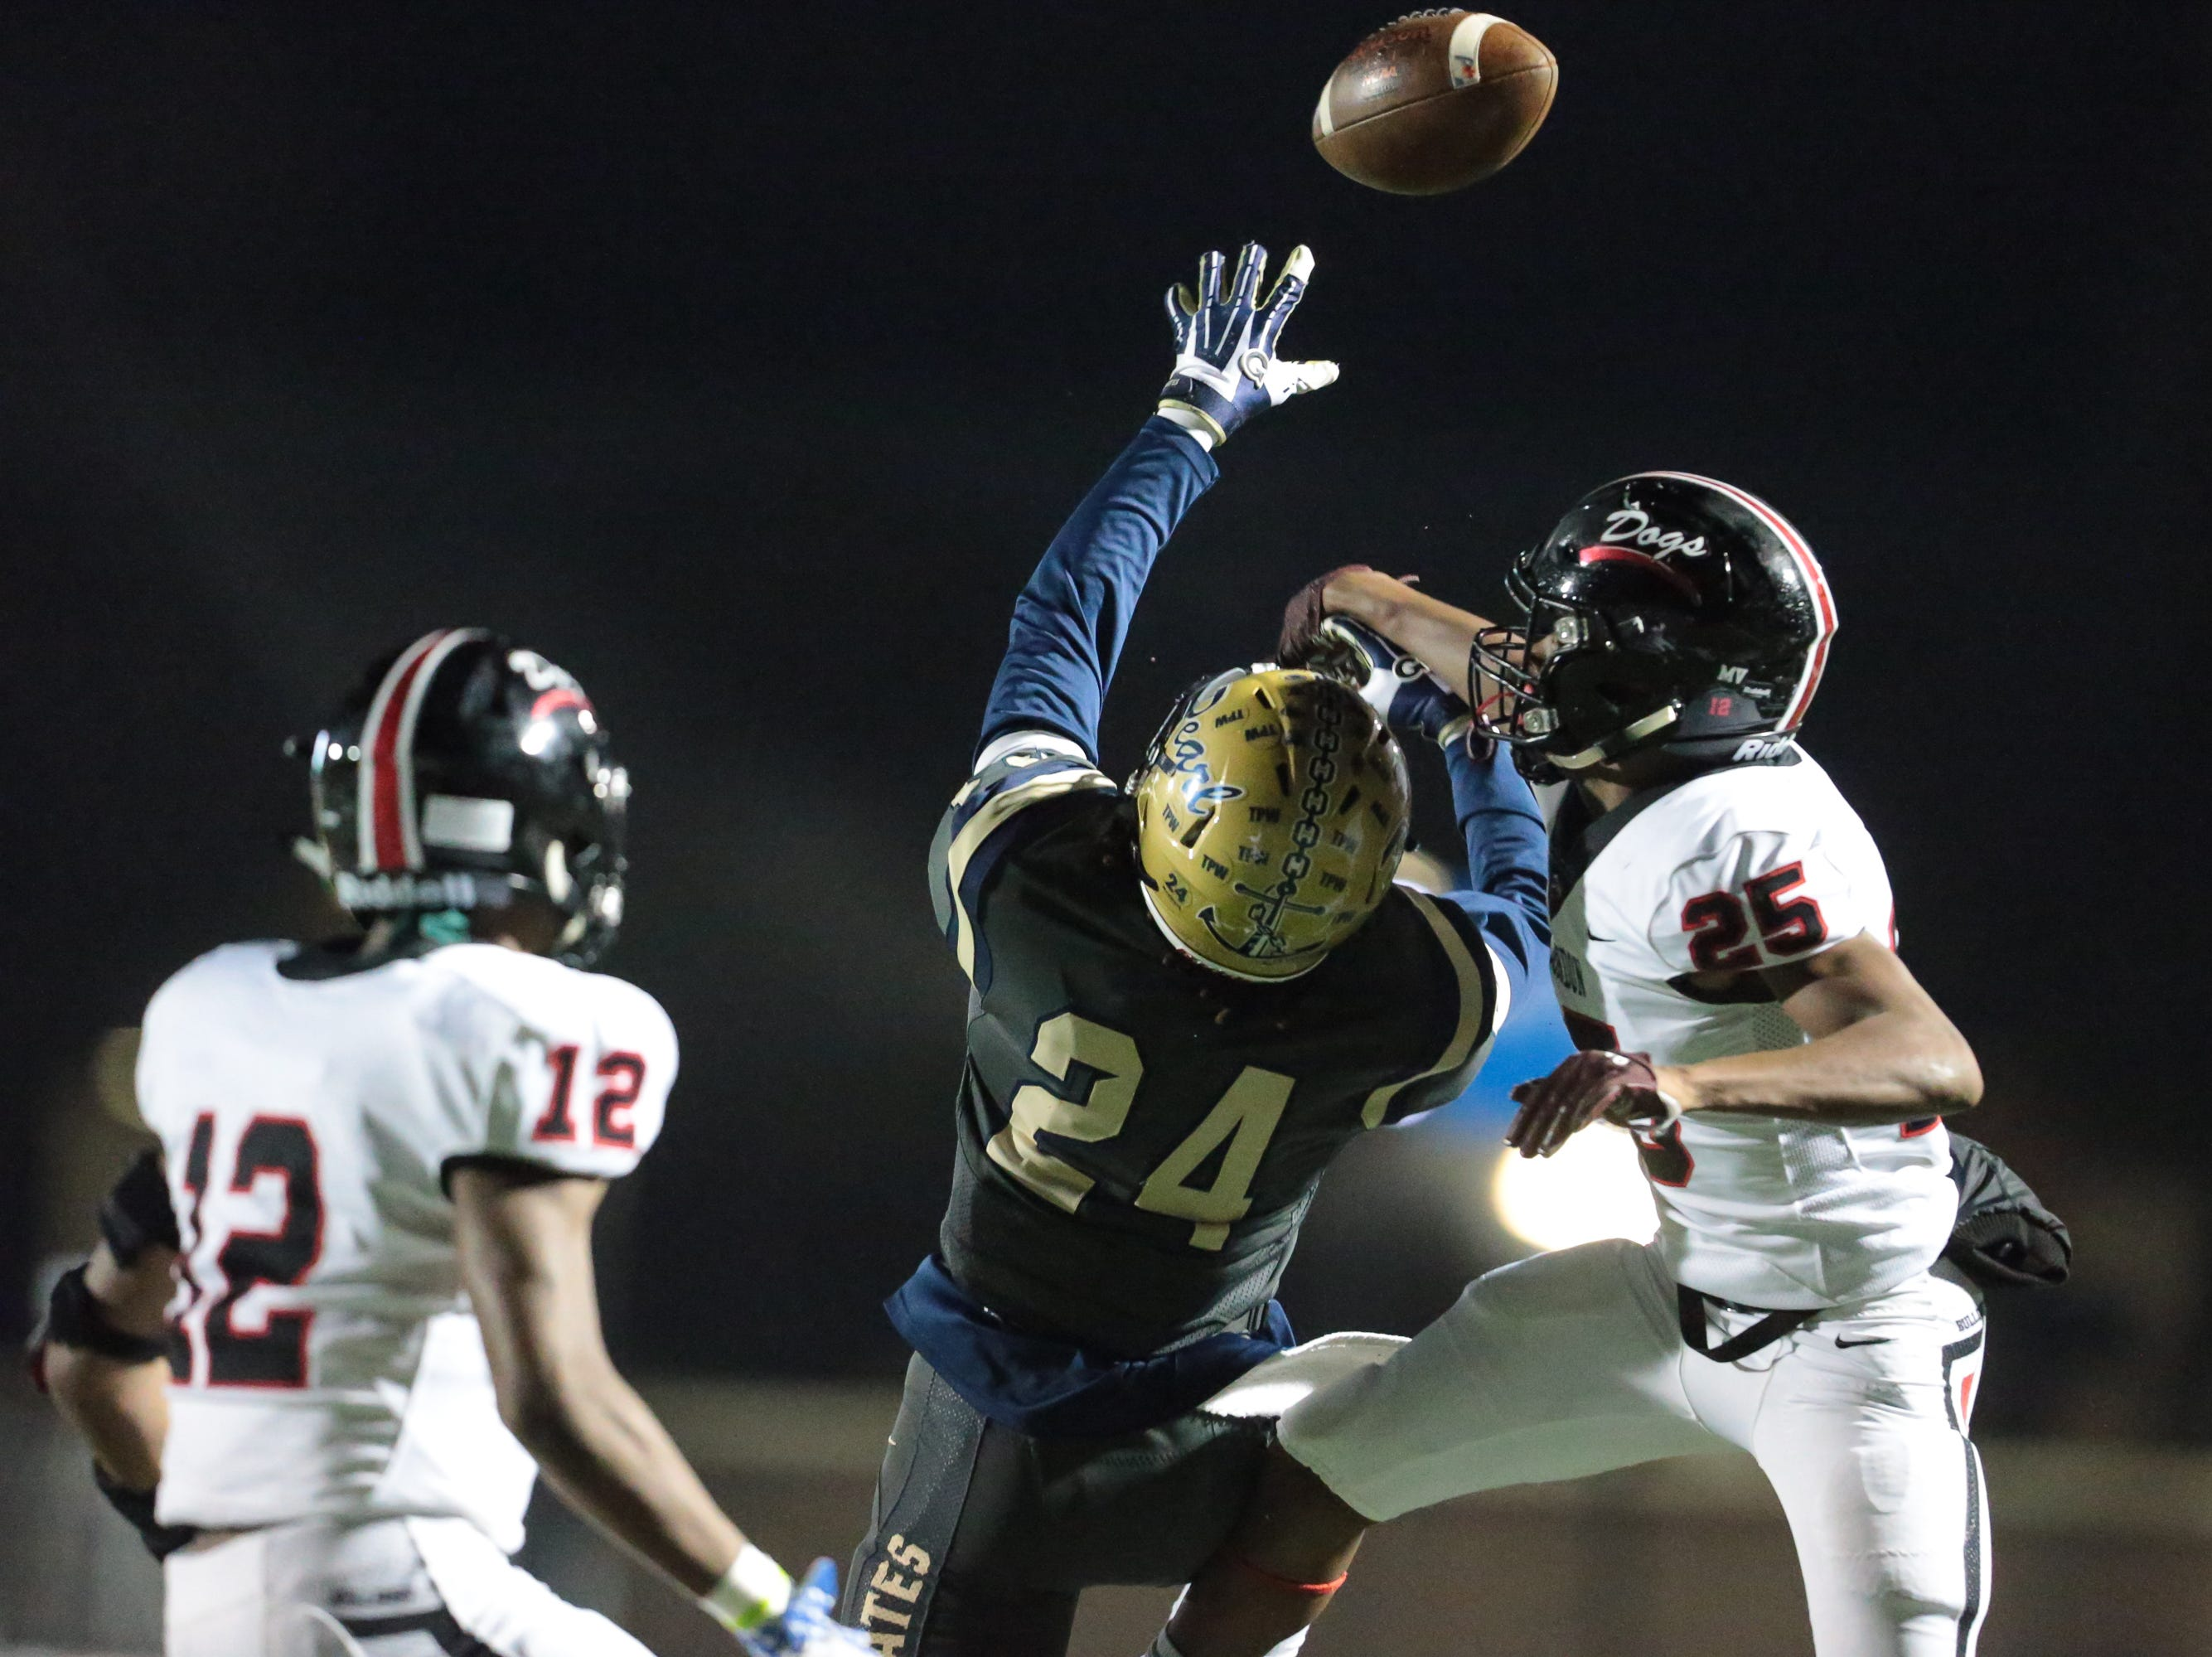 Brandon High School's Richard O'Bryant III (25) breaks up a pass intended for Pearl High School's Jerry Johnson (24). Pearl played Brandon High School in an MHSAA Class 6A playoff game on Friday, November 16, 2018 at Brandon. Photo by Keith Warren